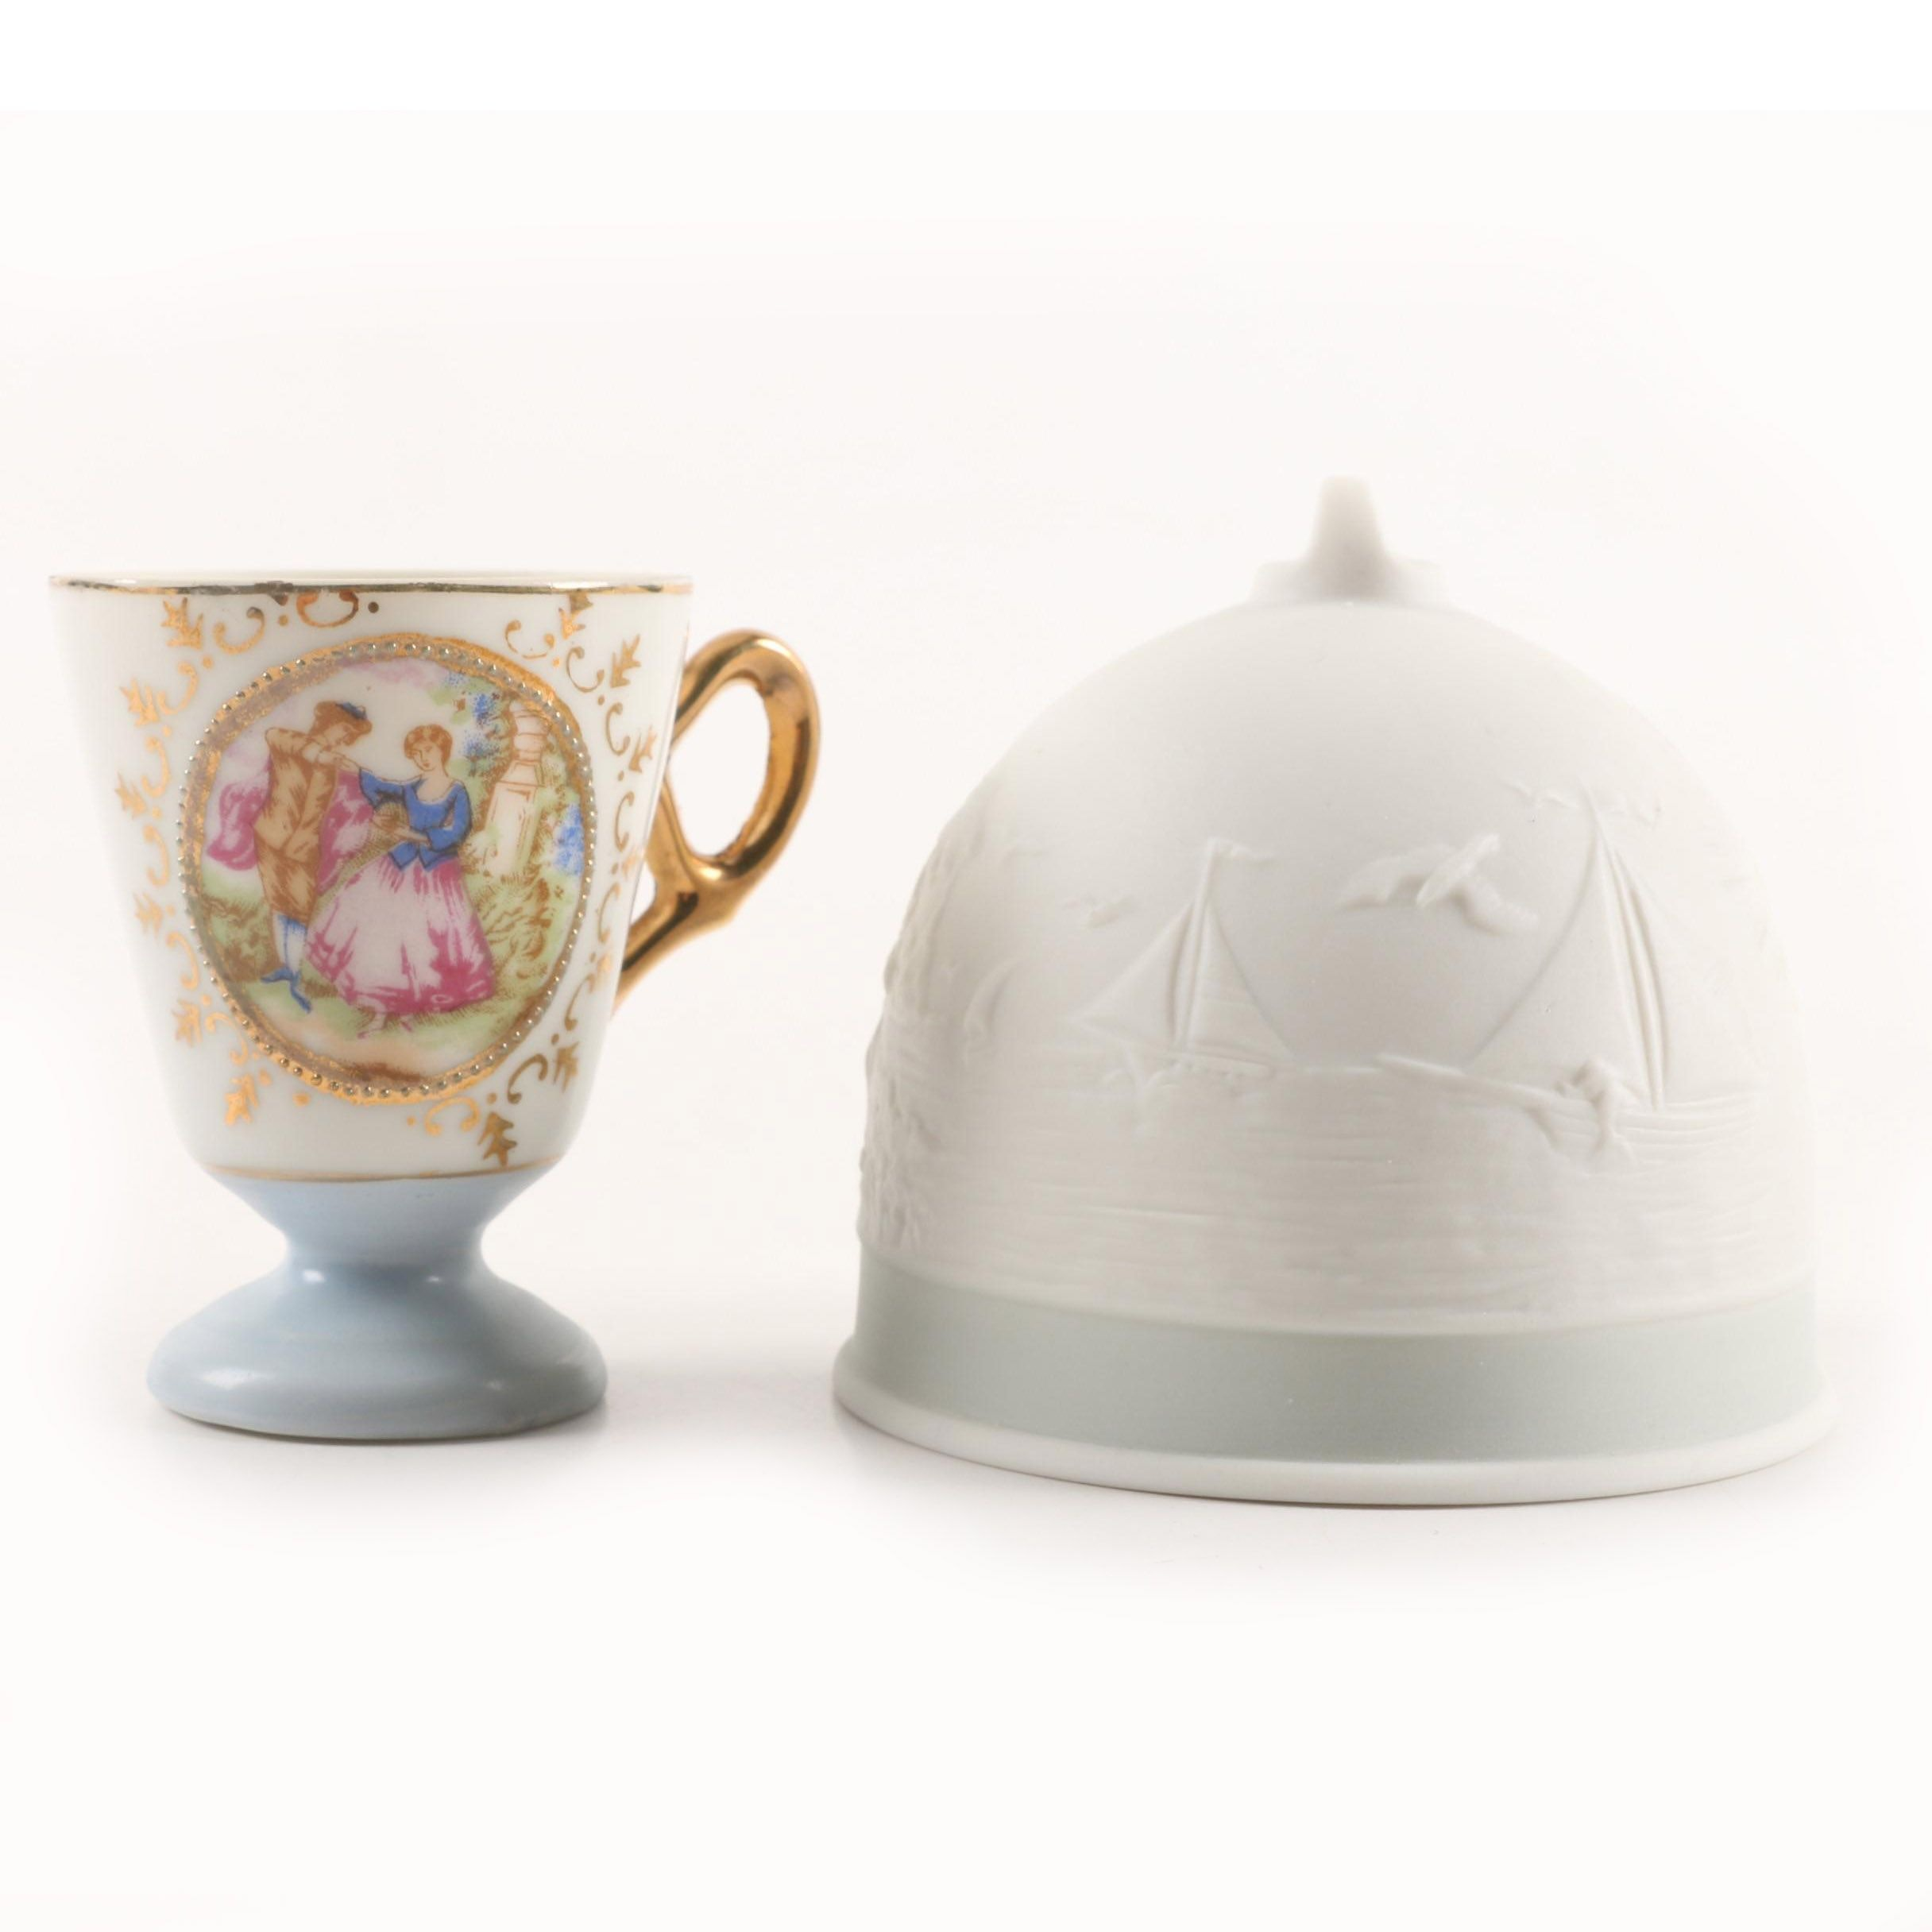 1992 Lladró Collectors Society Porcelain Bell and Courting Tableau Teacup